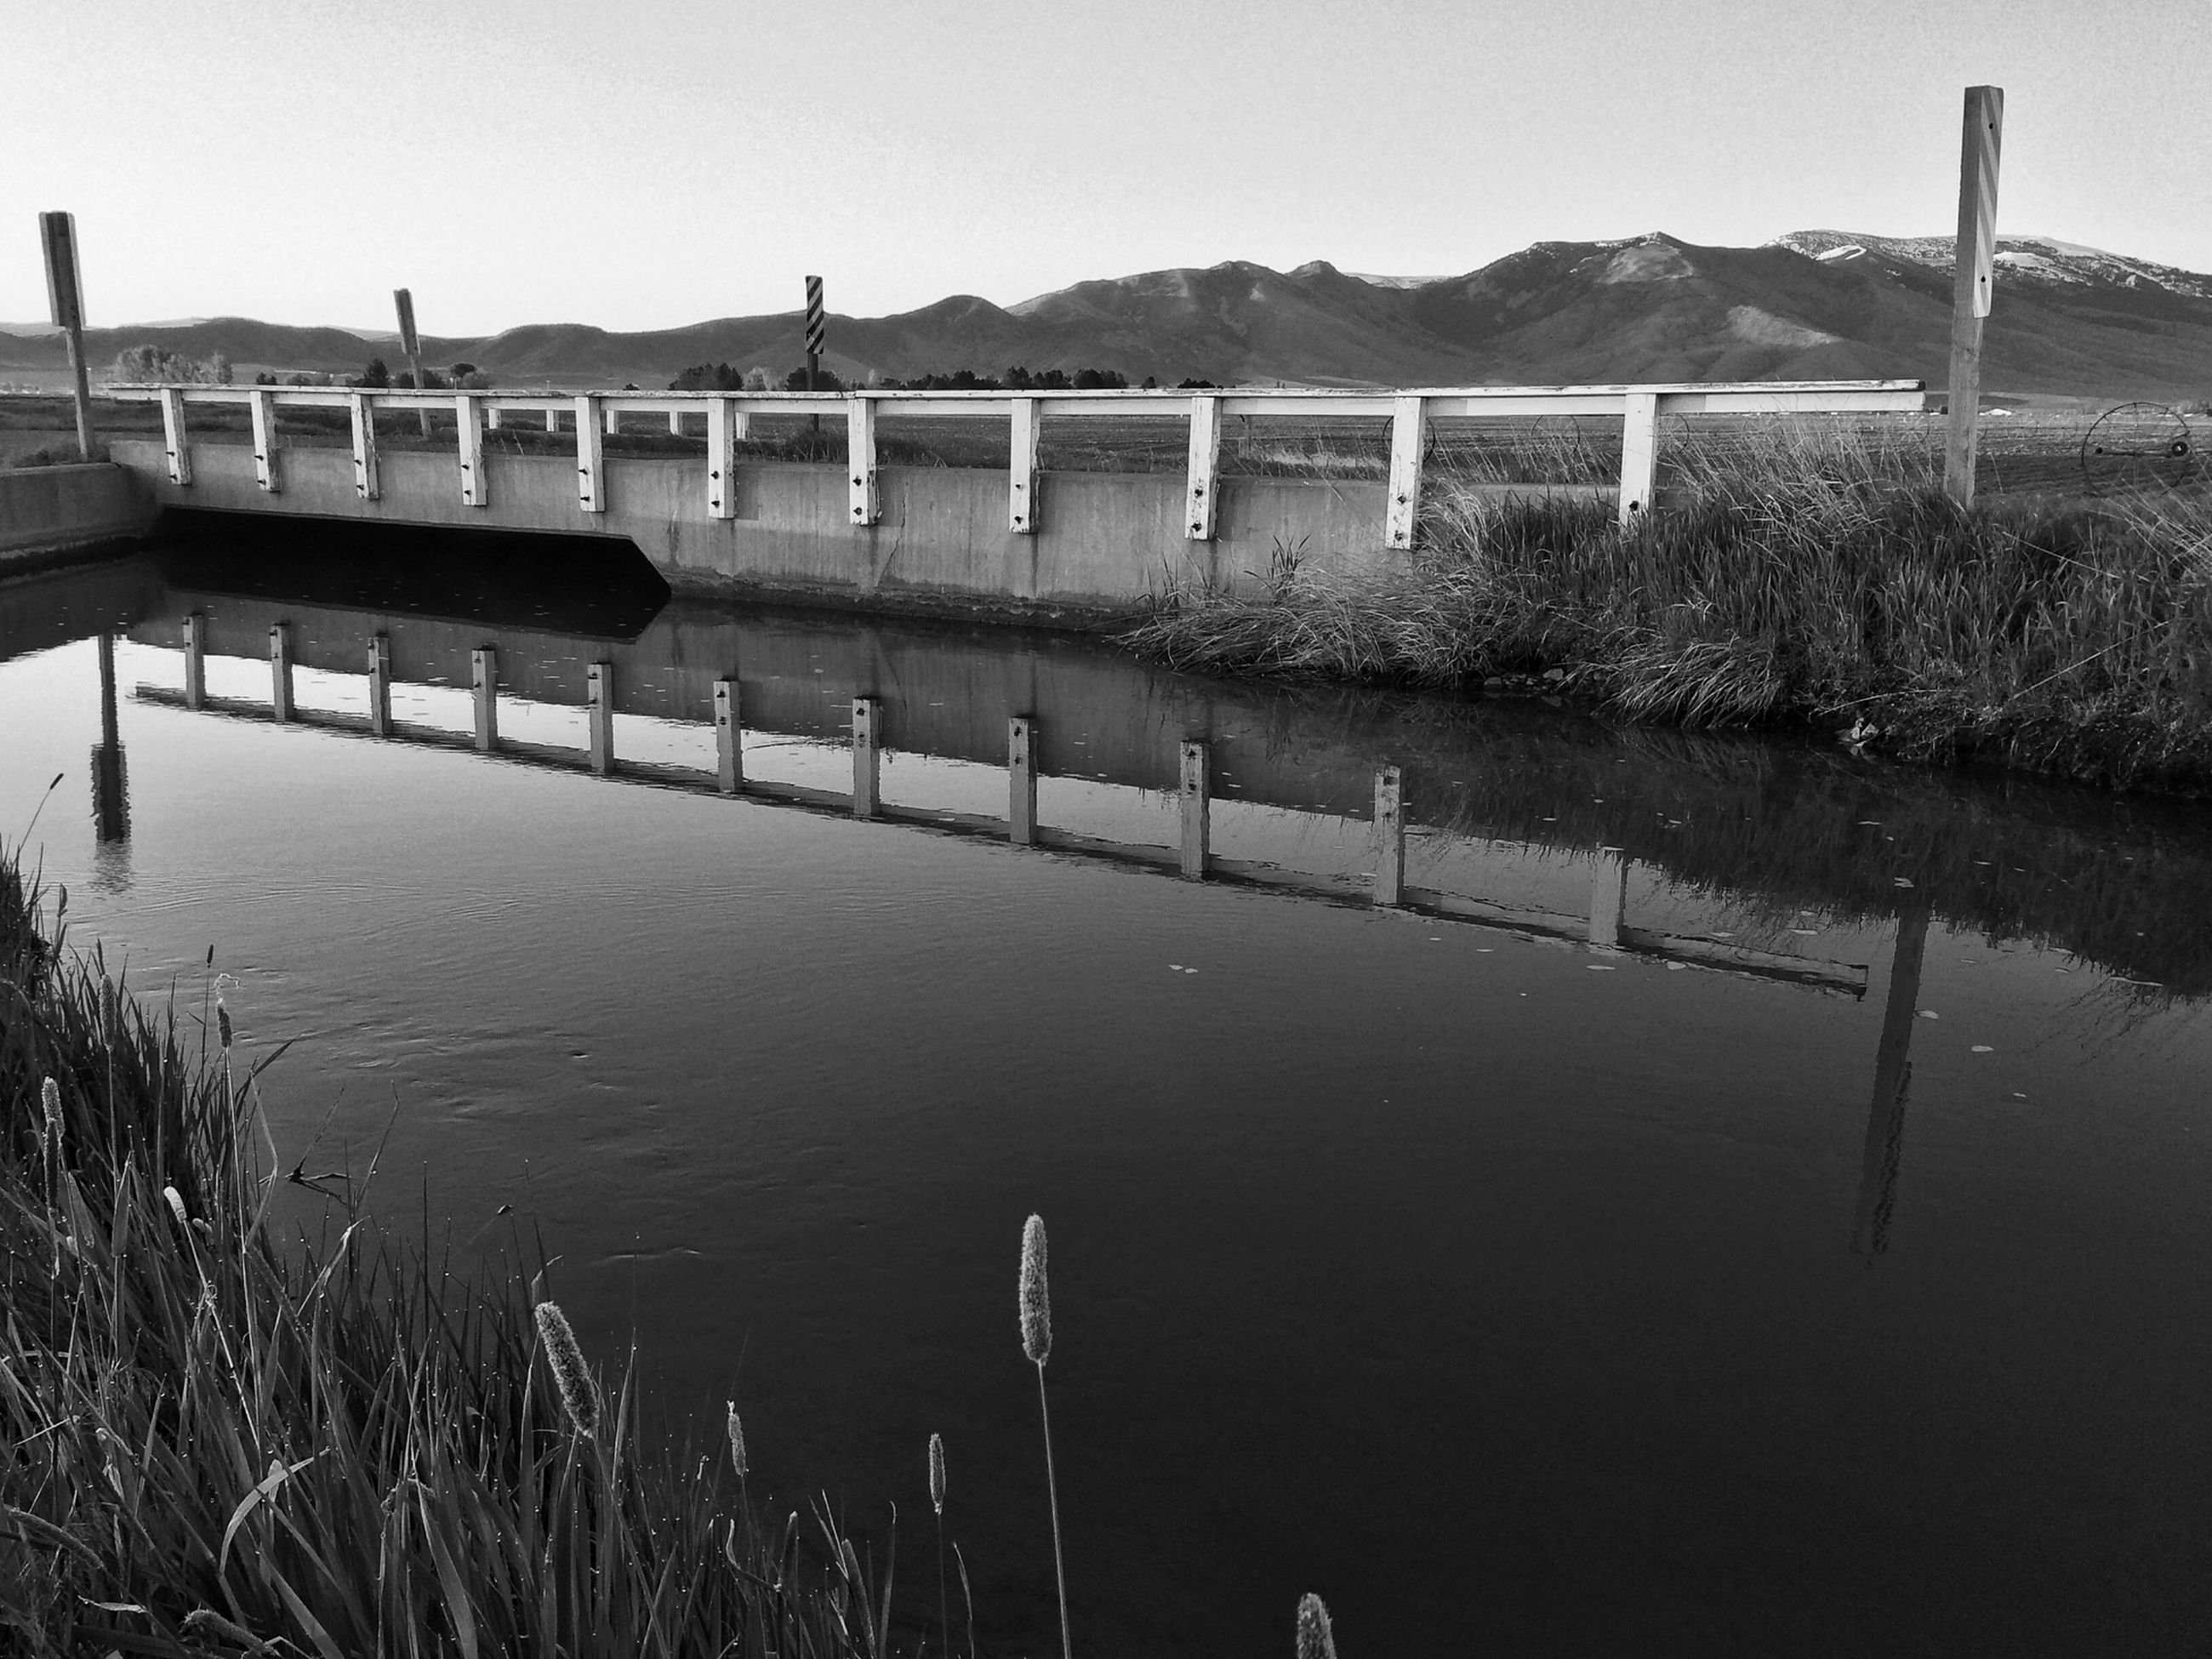 water, built structure, clear sky, architecture, river, bridge - man made structure, railing, lake, reflection, tranquility, connection, nature, tranquil scene, pier, outdoors, no people, grass, day, bridge, scenics